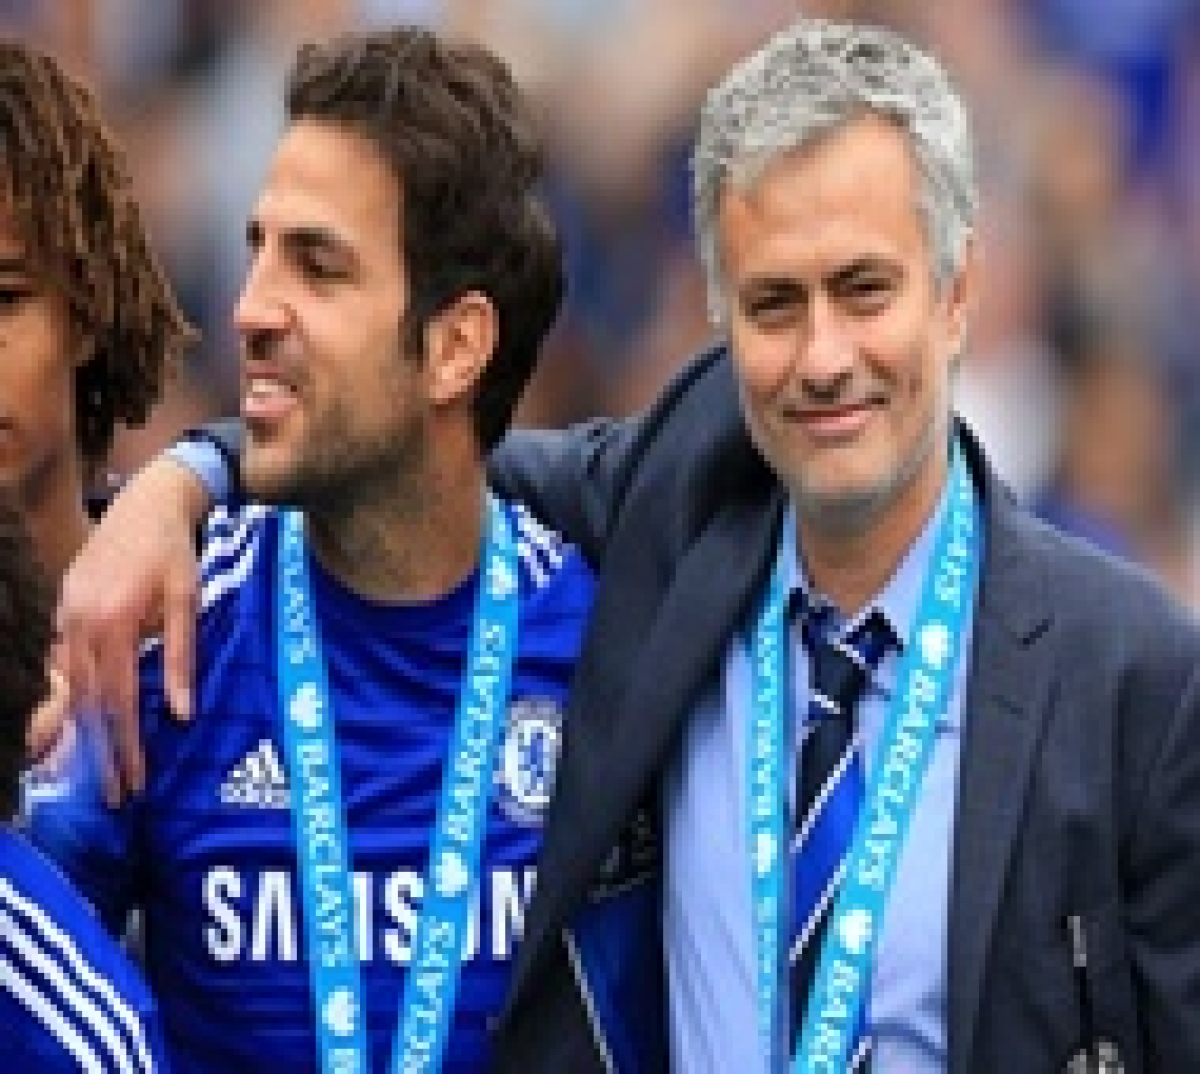 Too much faith in players let Mourinho down: Chelsea's Fabregas